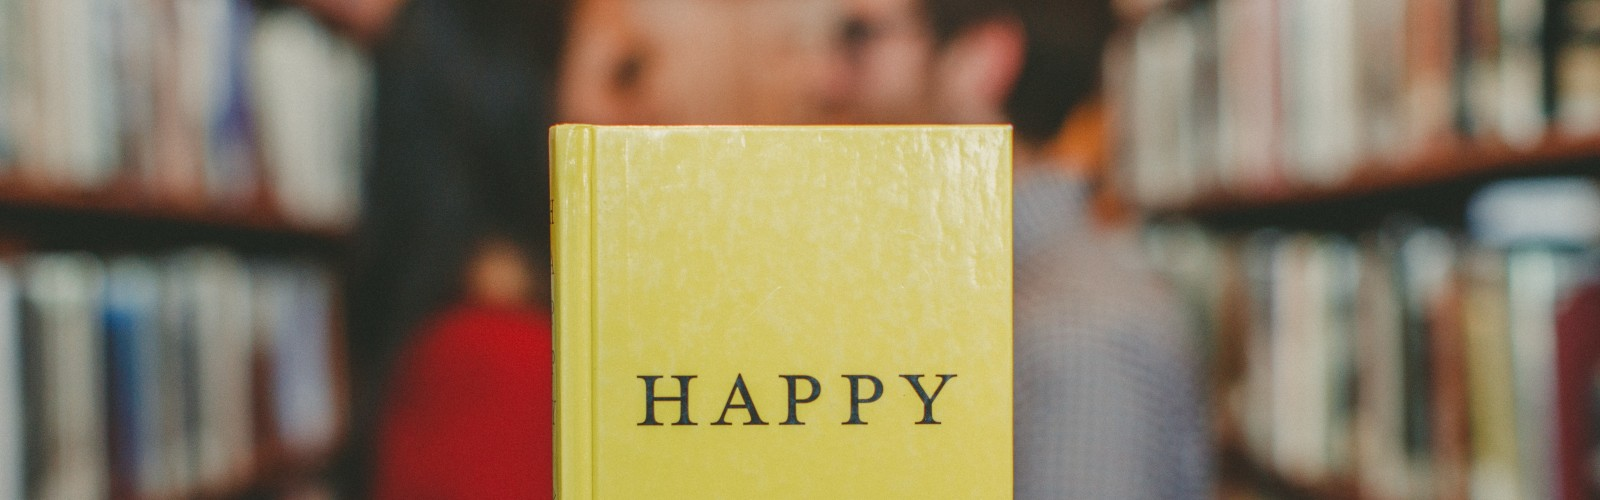 "Photograph of a book with ""Happy"" written on the front cover, held up in front of a couple facing towards each other alongside some bookshelves"